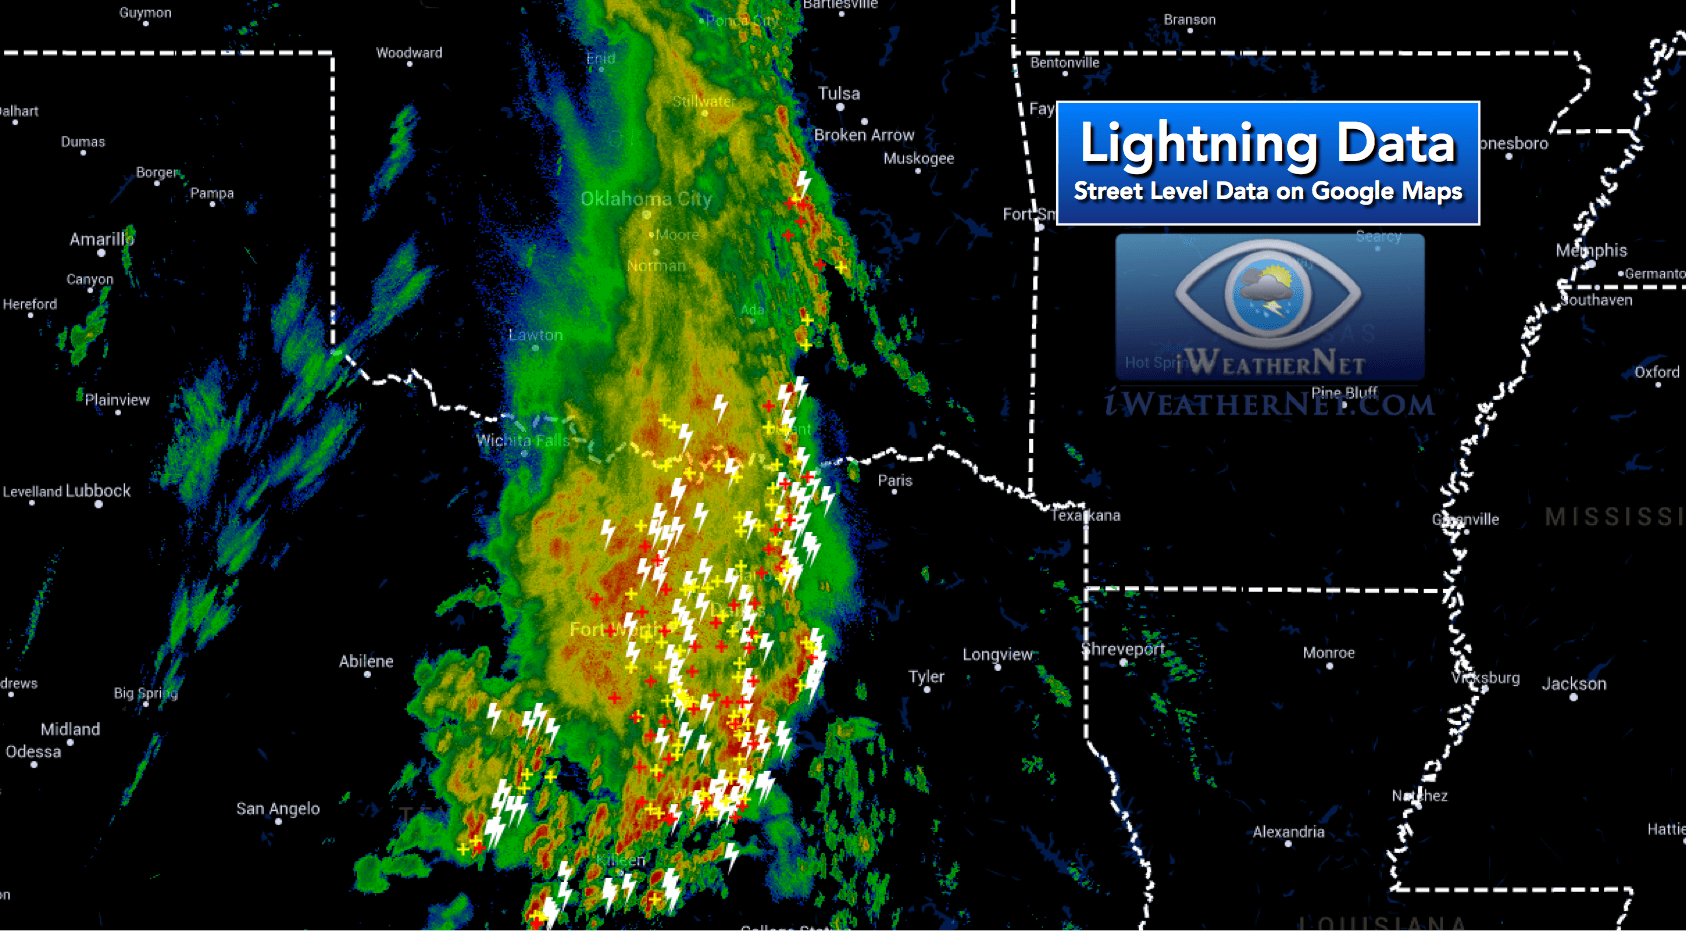 Latest Lightning Strikes On Google Maps Iweathernet - Us-lightning-strike-map